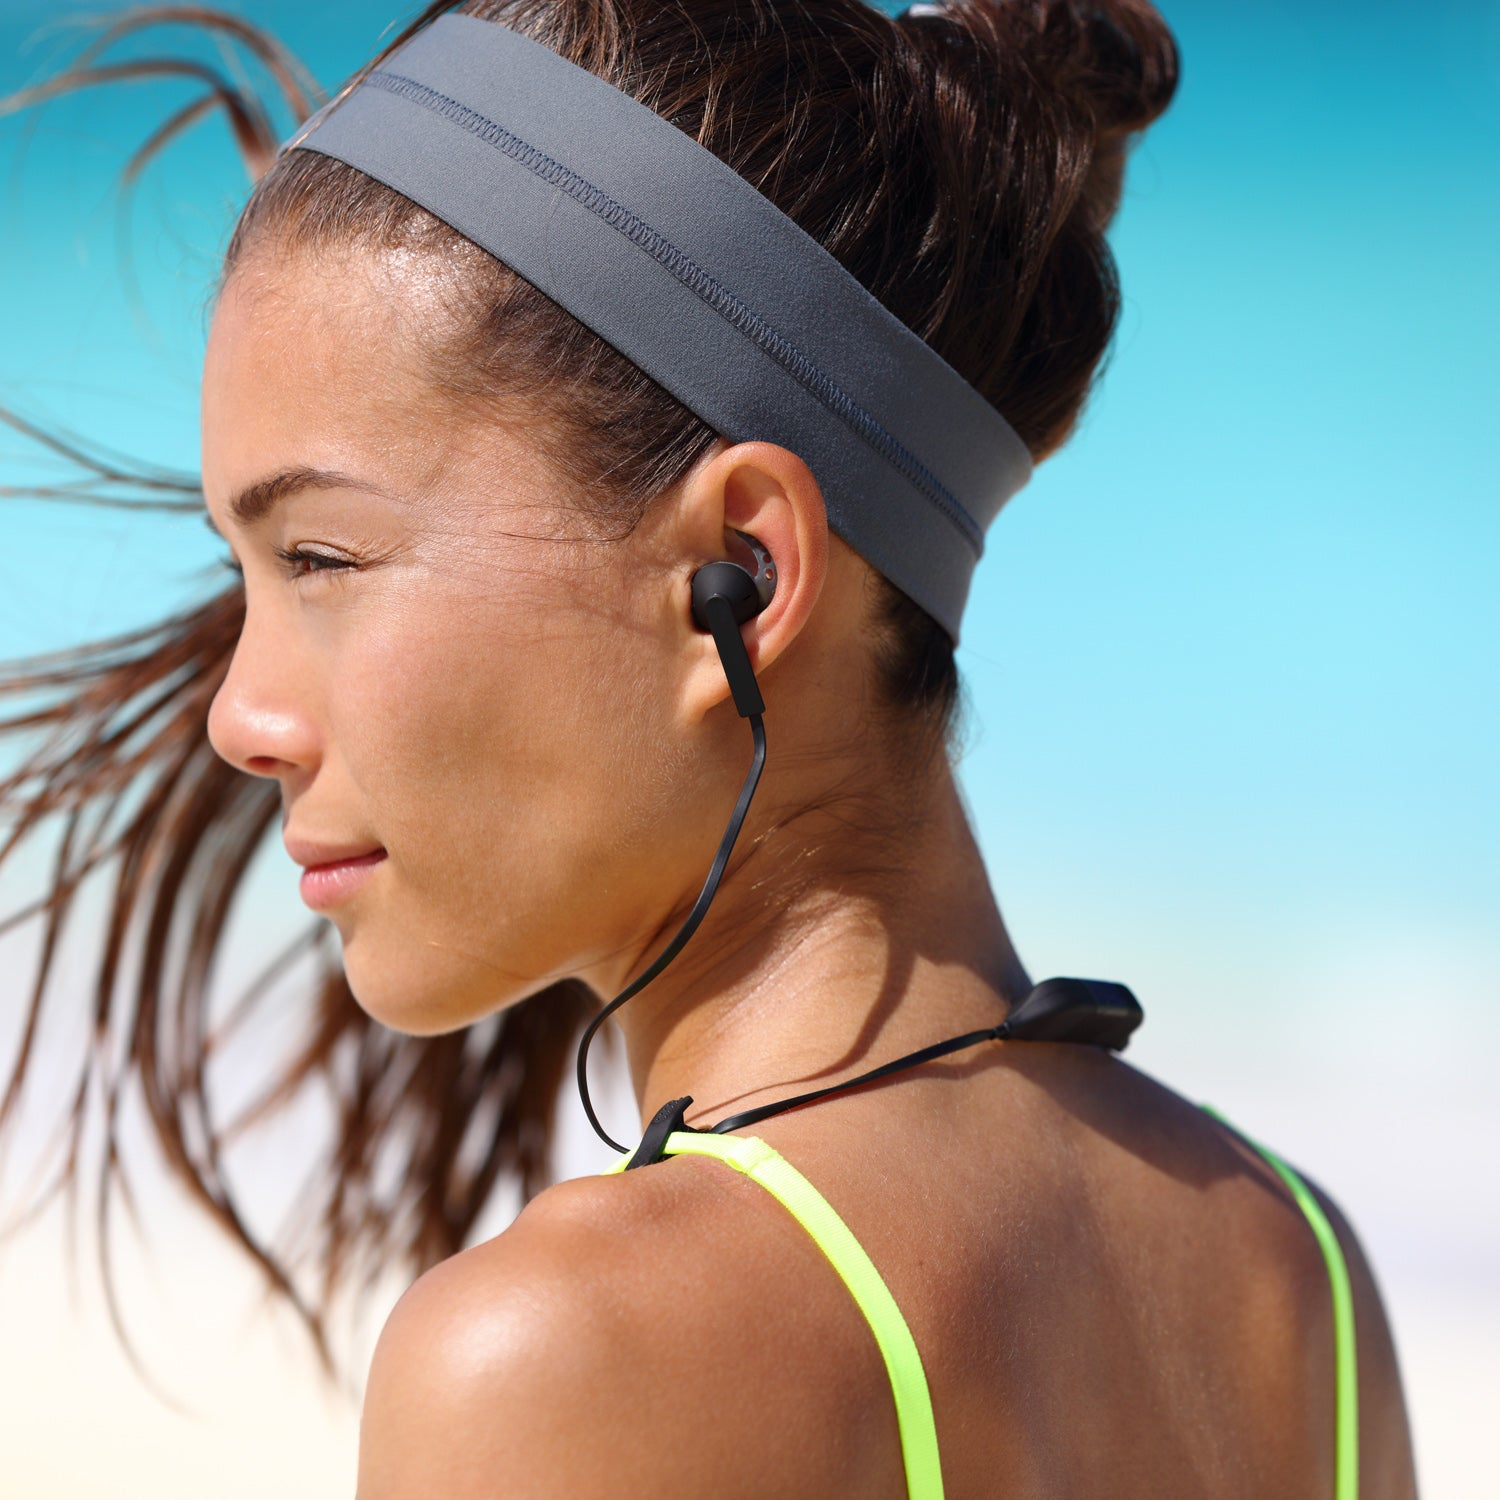 10 Of The Best Wireless Headphones For Sport